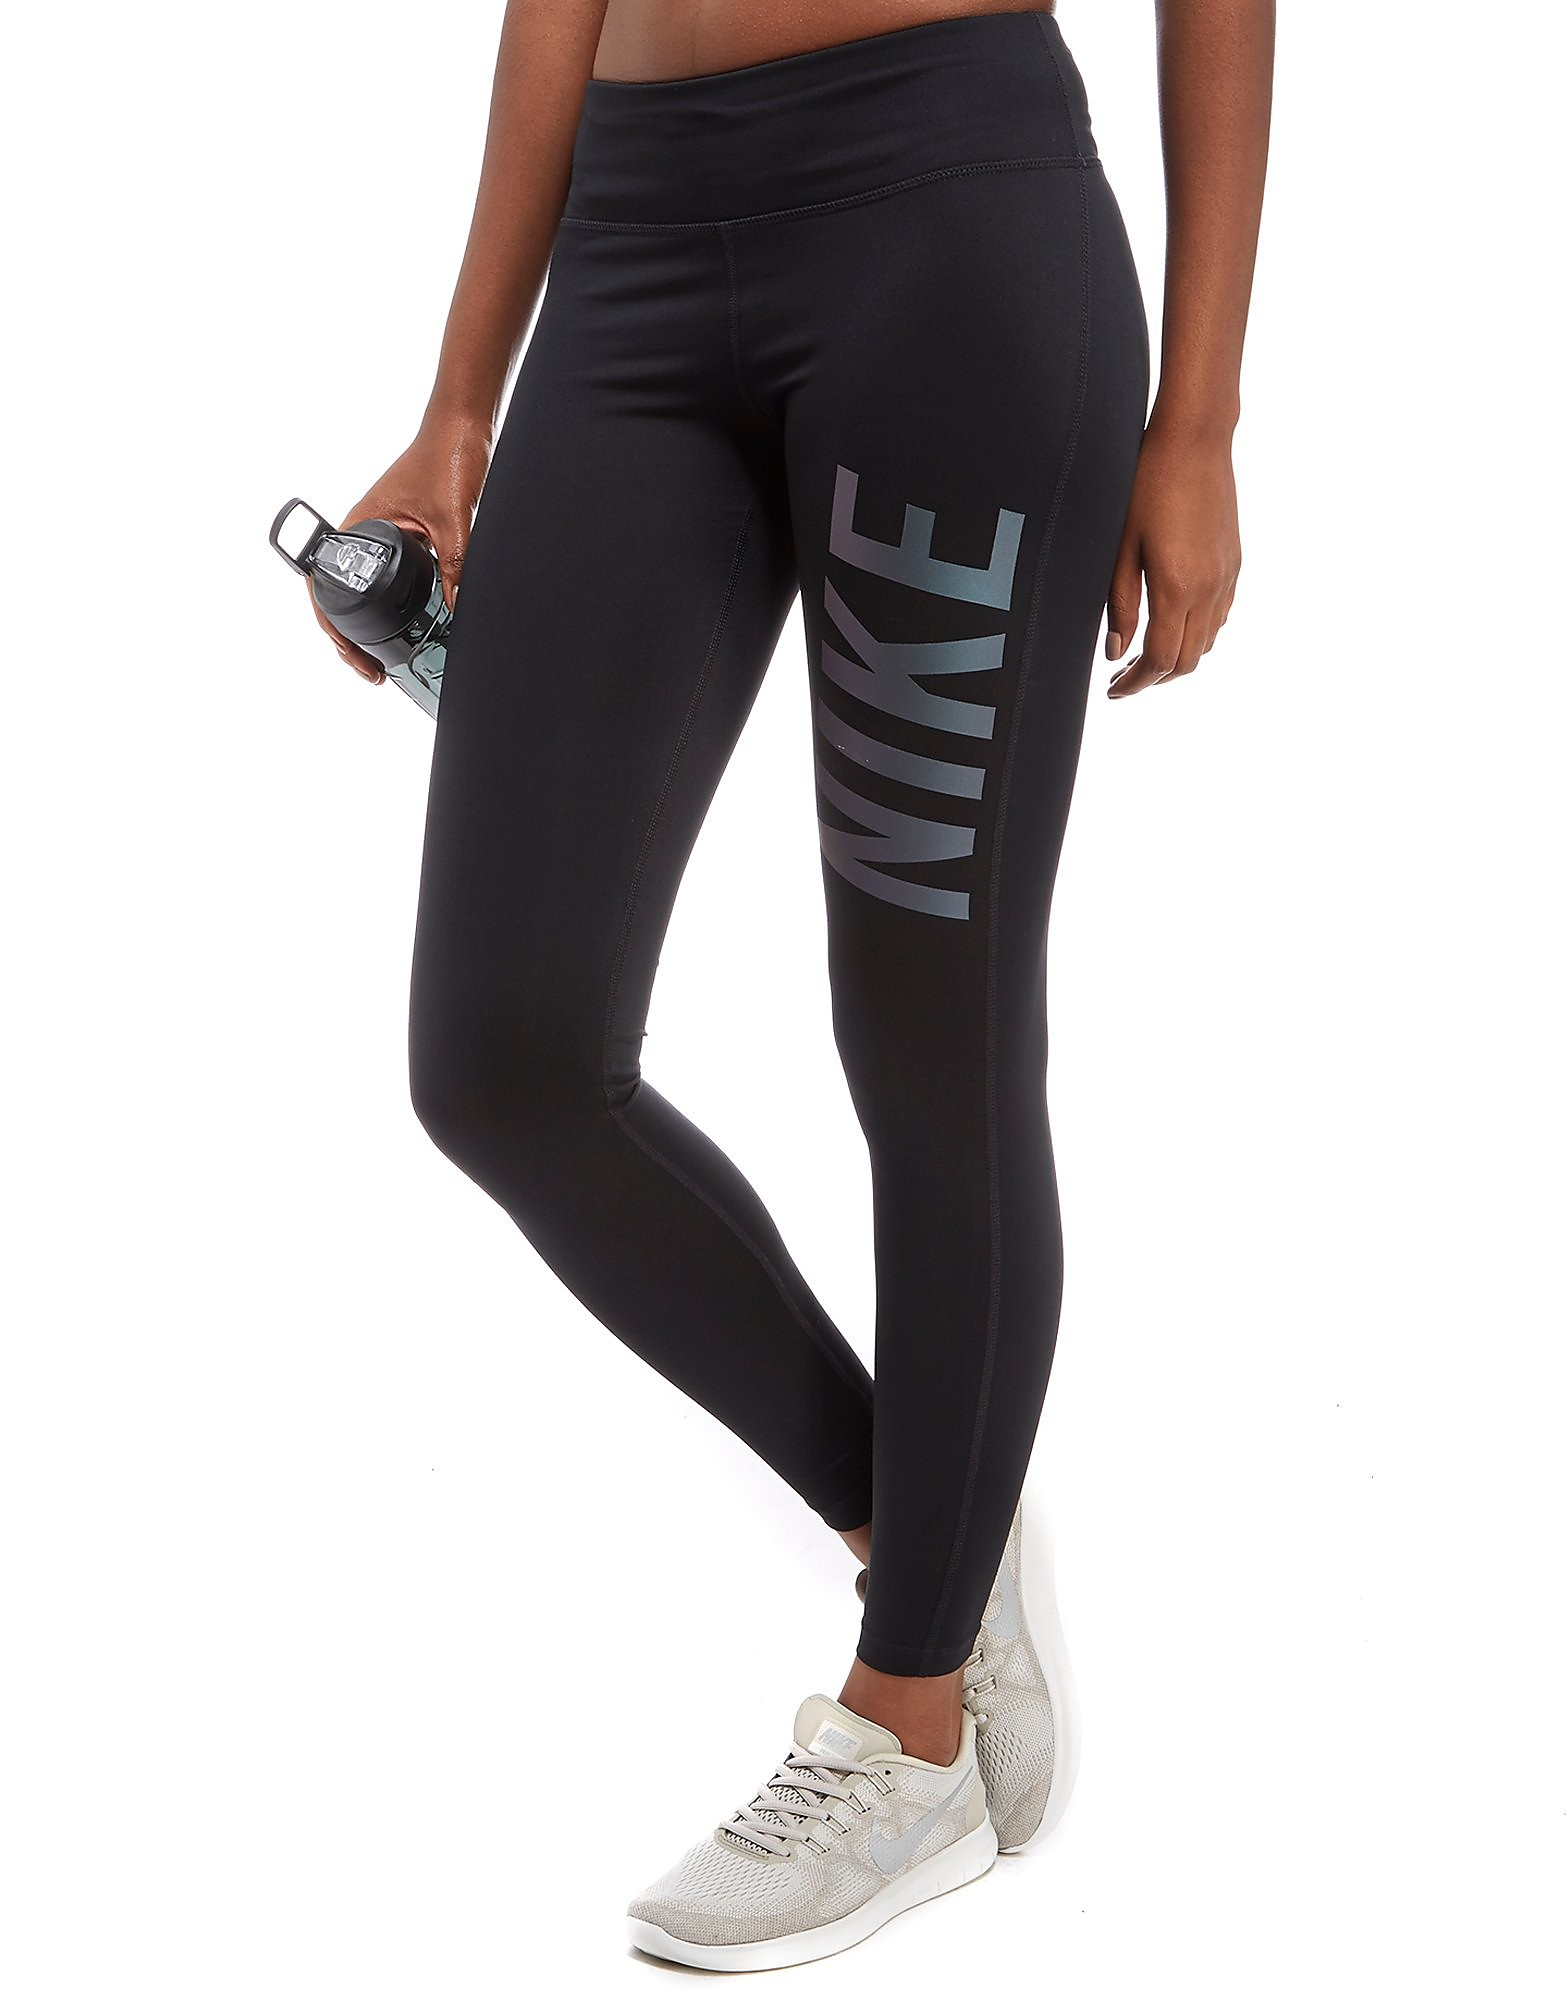 Nike Power Metallic Running Tights